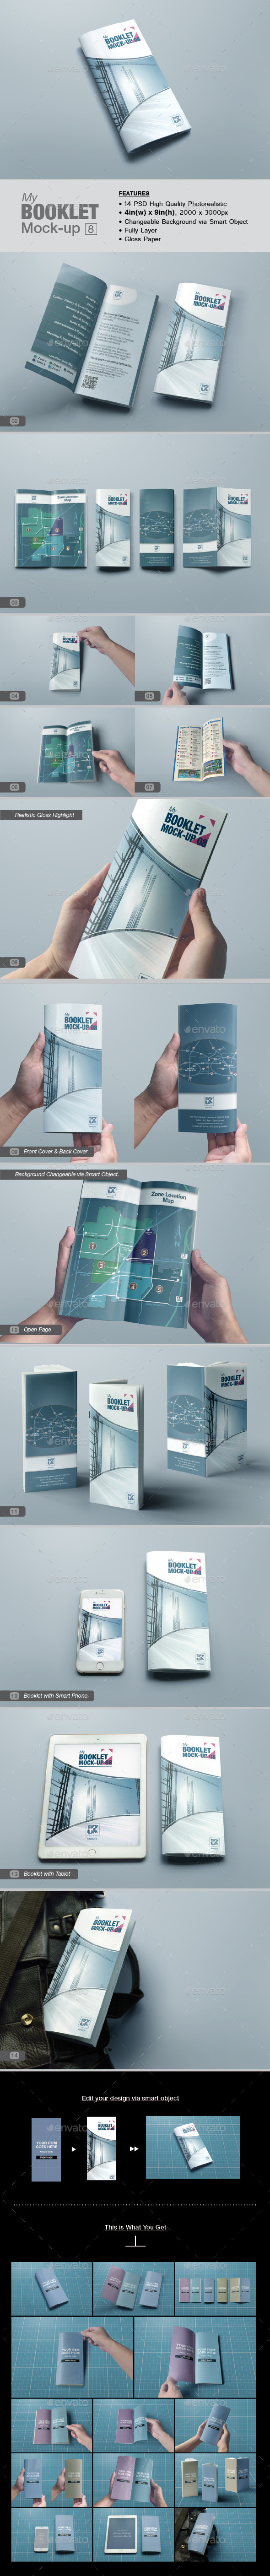 GraphicRiver myBooklet Mock-up 08 11494158